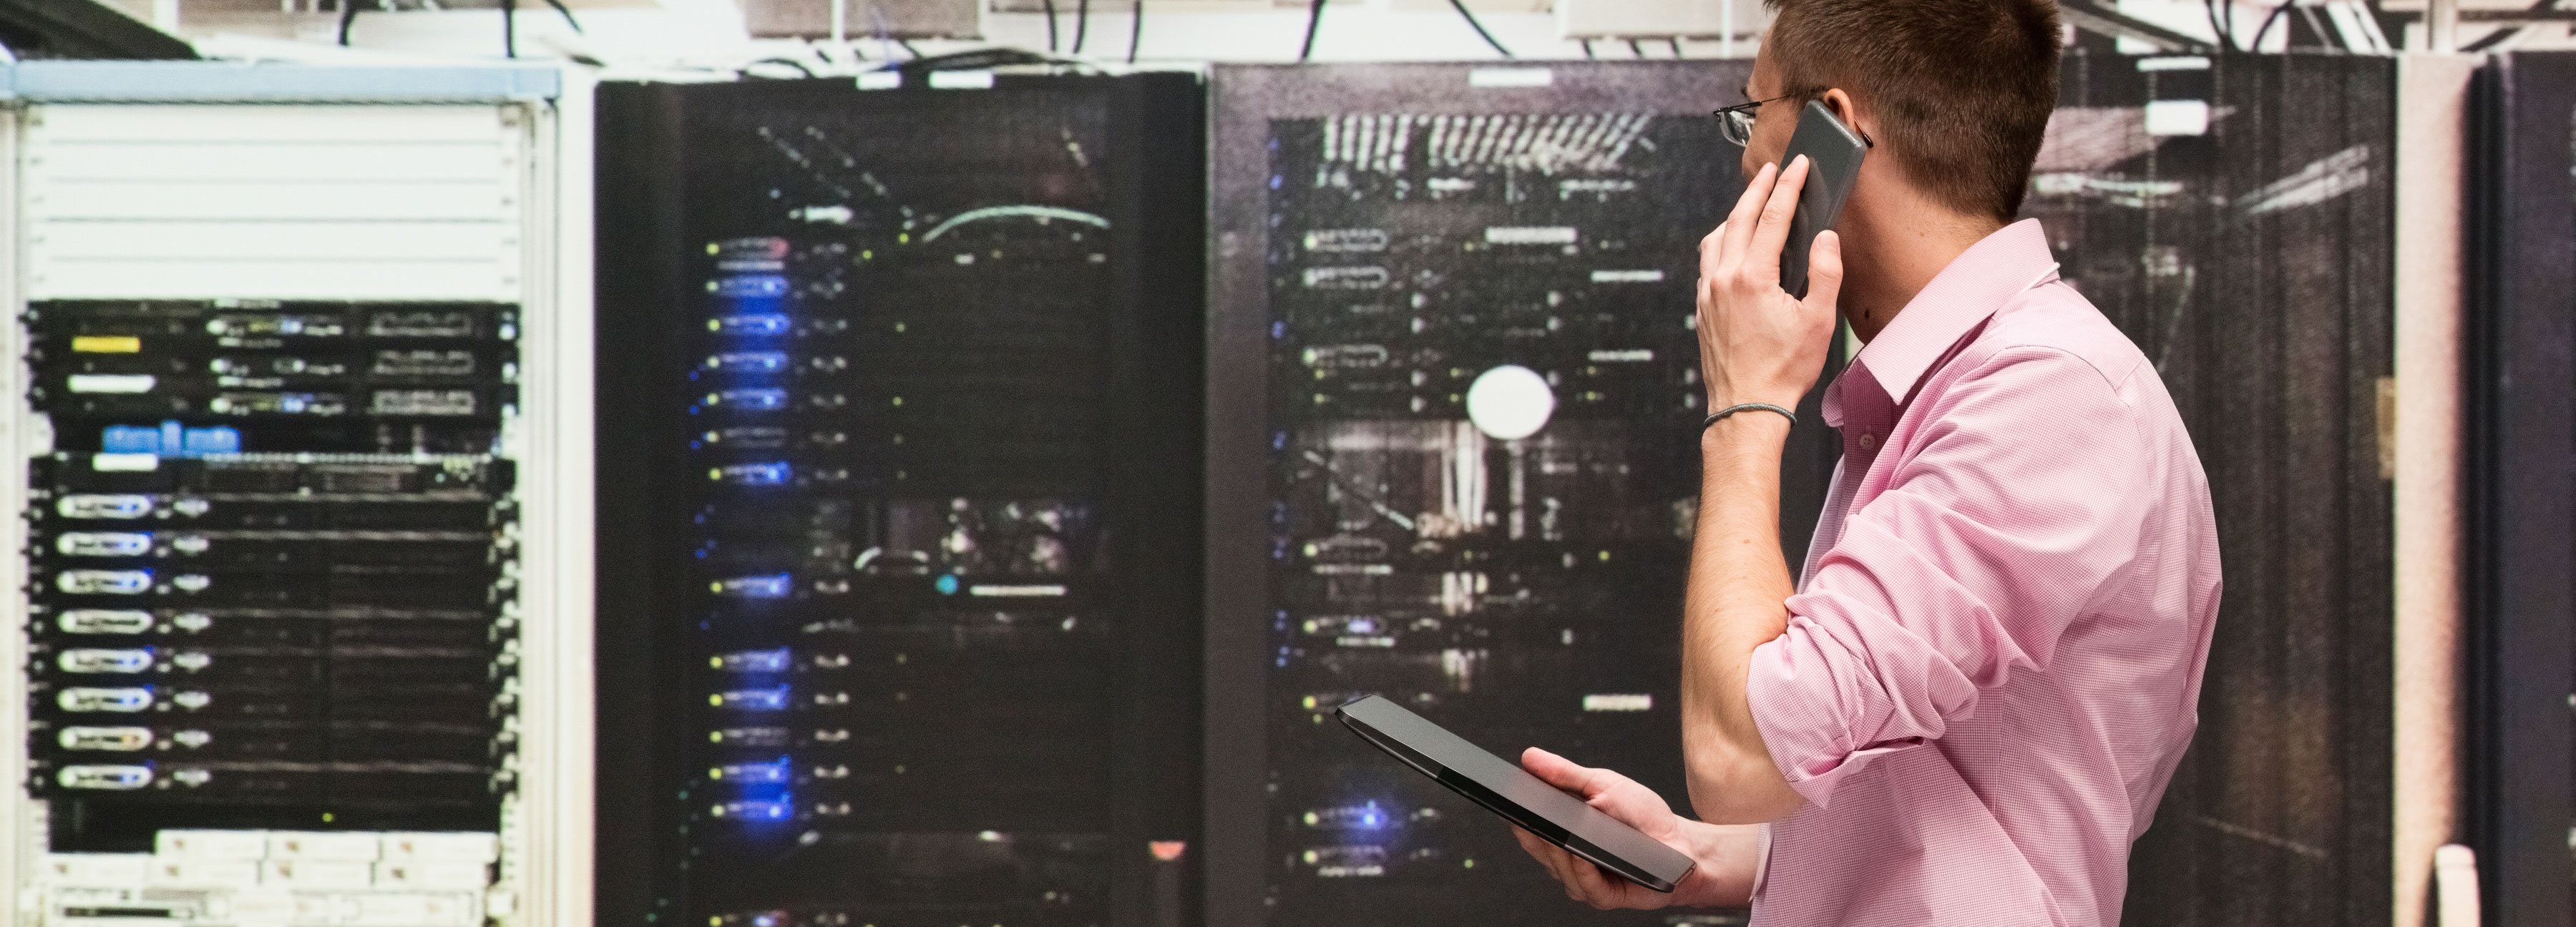 Network engineer reviewing server cabinet